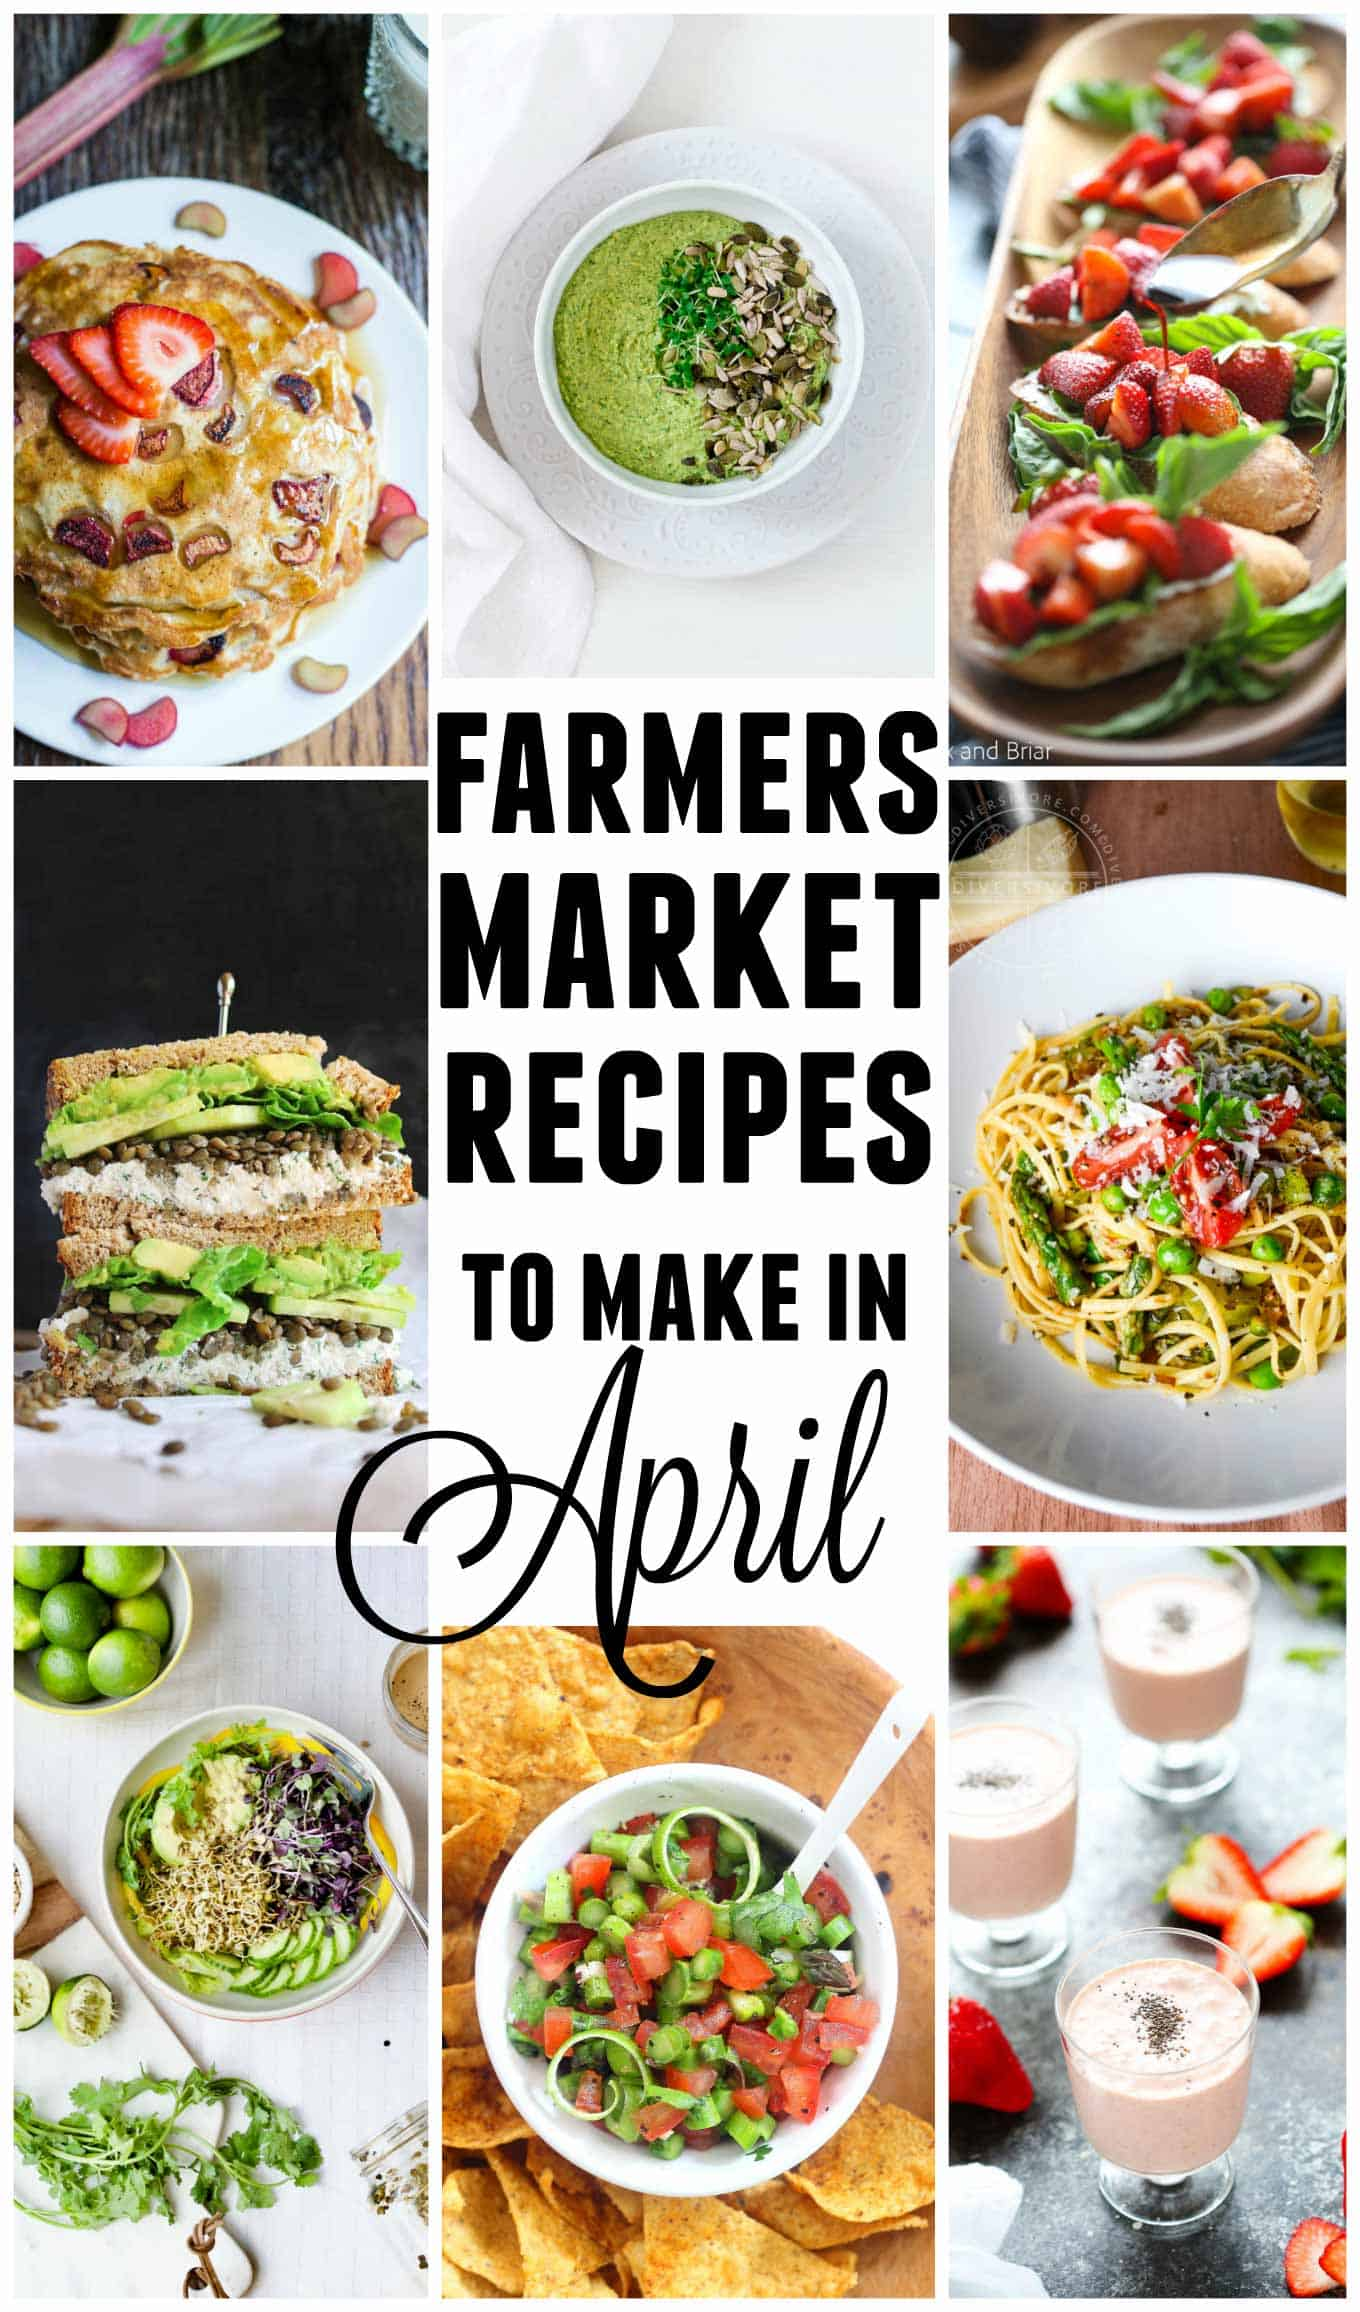 15 Farmers market recipes to make in April! Delicious, vegetarian, (mostly) healthy spring recipes made with fresh, seasonal produce from your local farmers market or CSA bin. Eat local! // Rhubarbarians